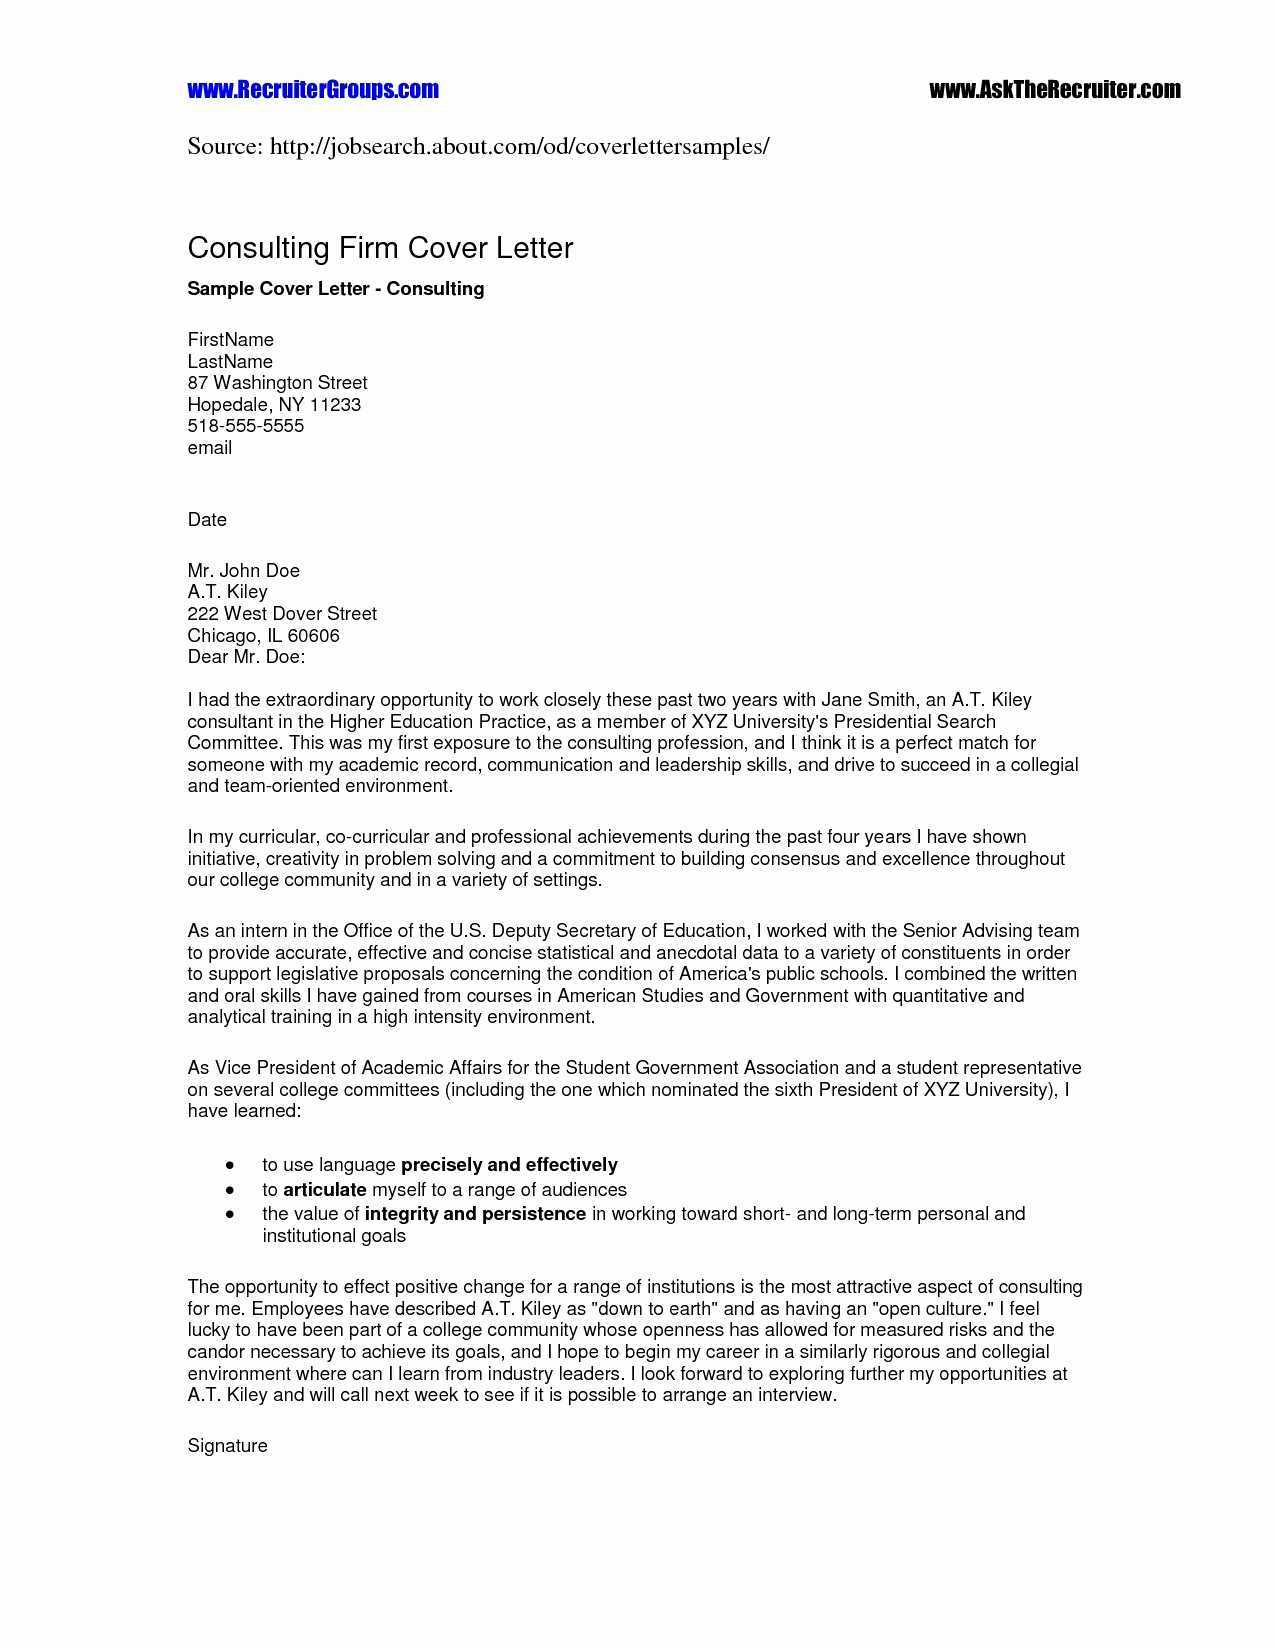 Statement Of Service Letter Template - Sample Diversity Statement for Employment Along with Cover Letter